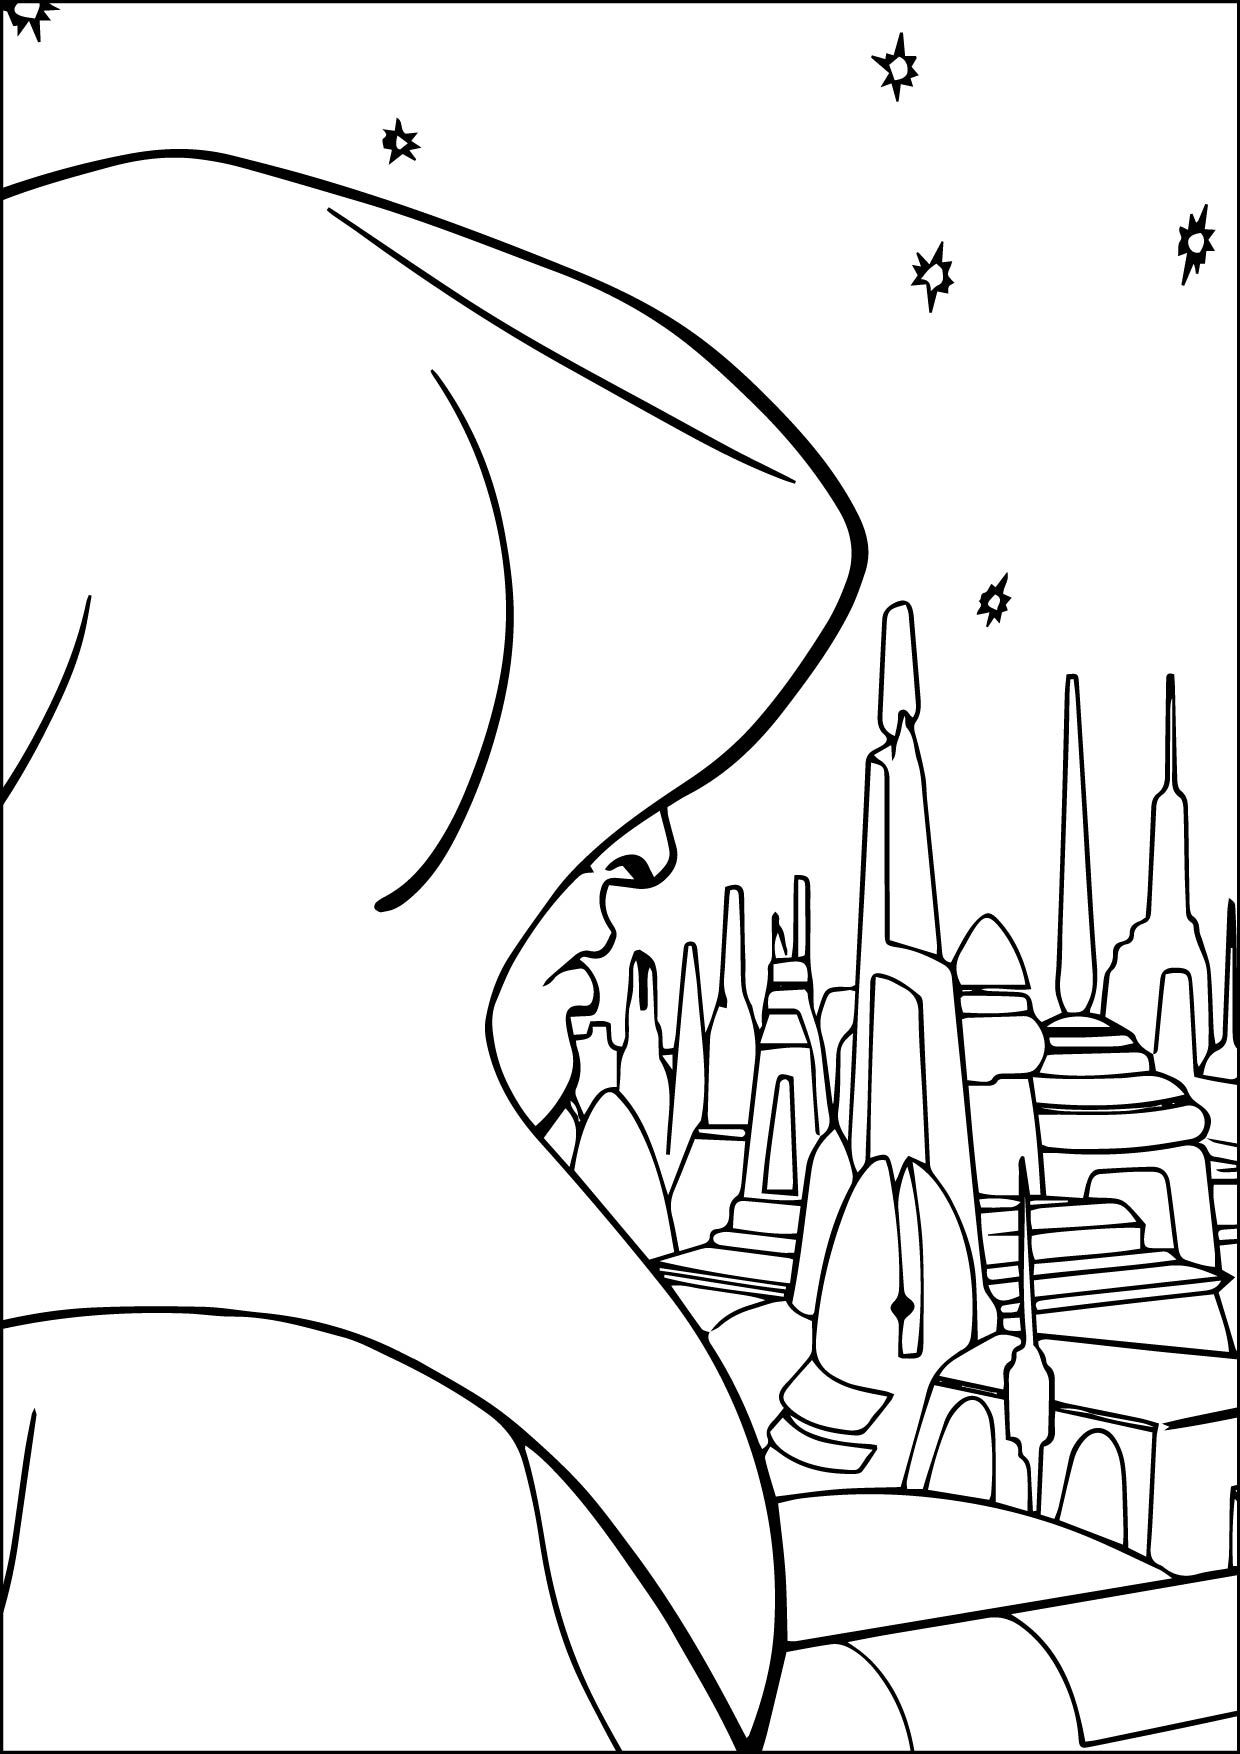 Nice Coloring Page 10 10 2015 134511 01 Coloring Pages Coloring